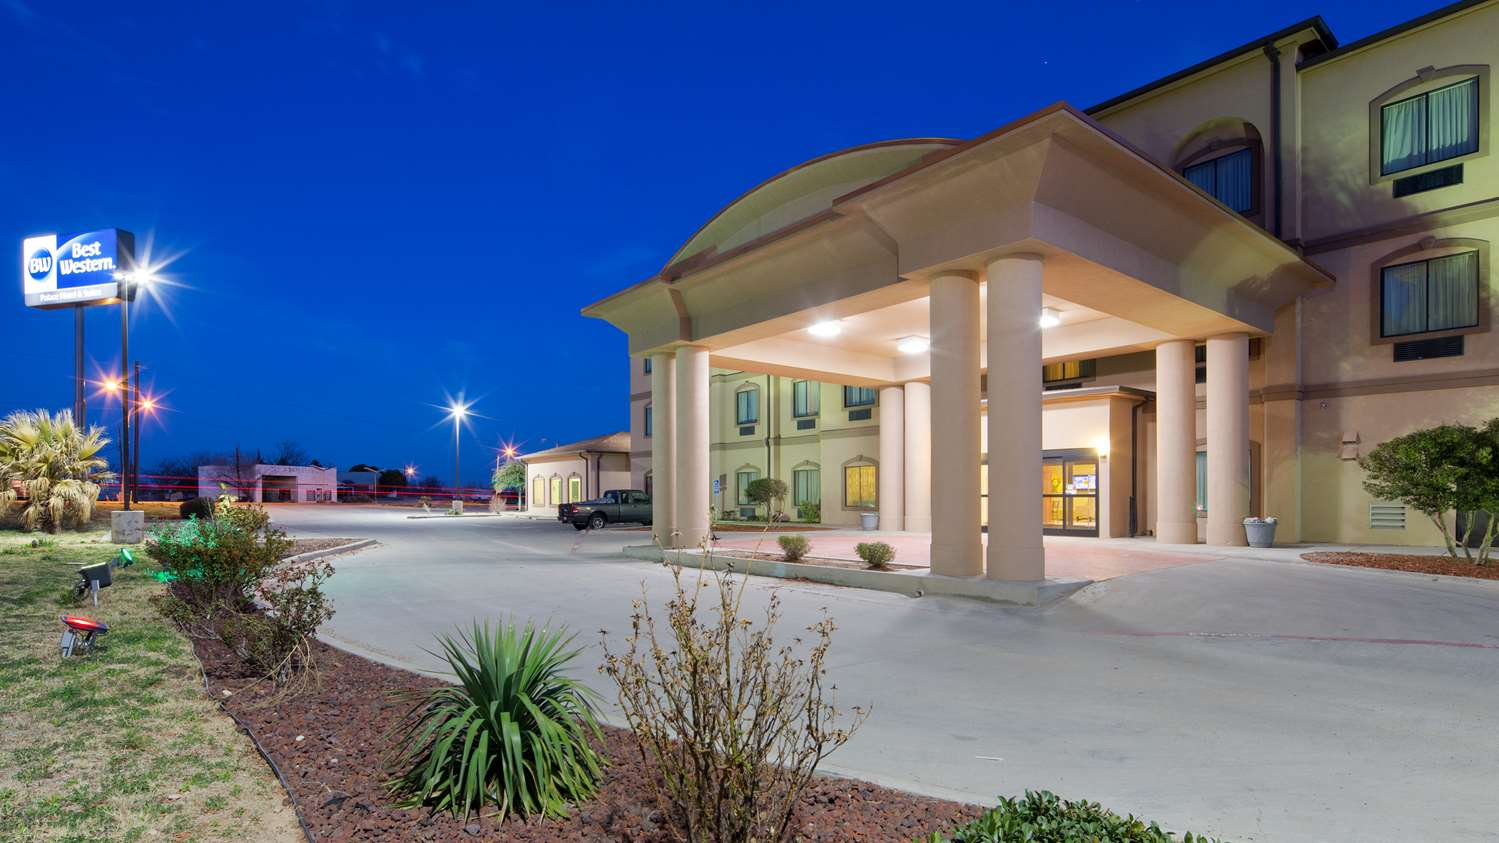 Big Springs Texas Pet Friendly Hotels